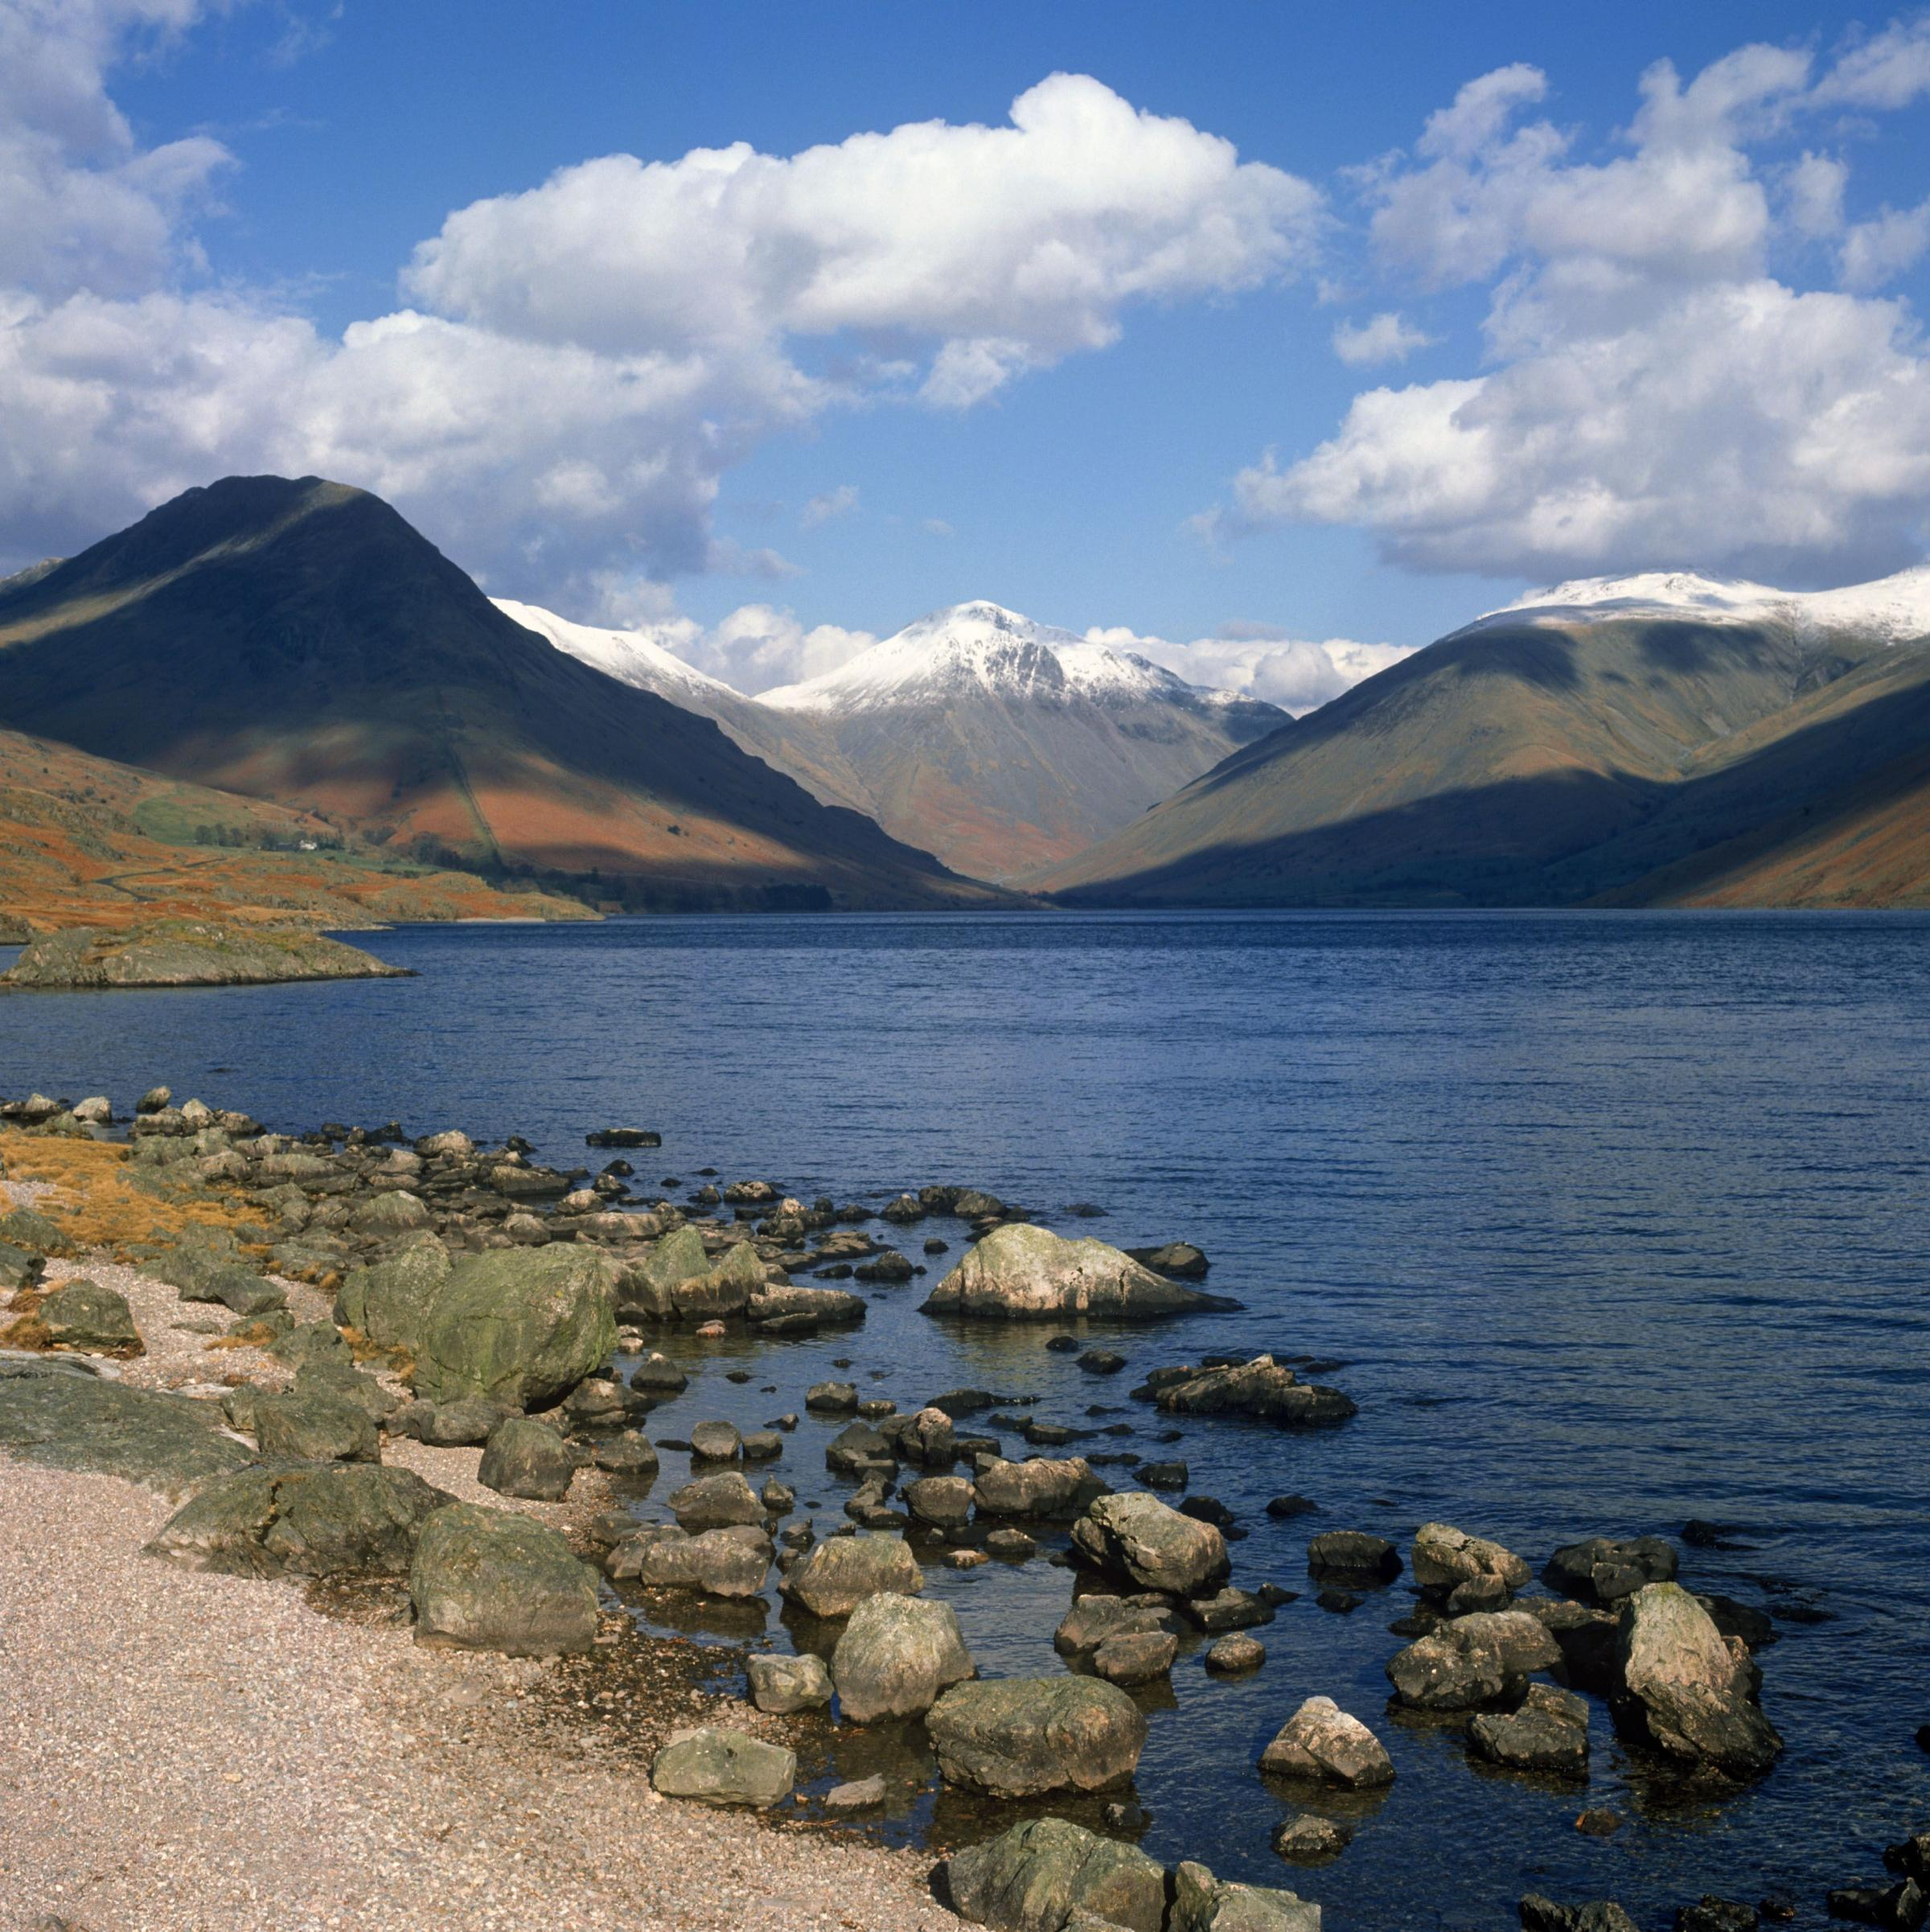 The landscape of the Lake District - a big attraction for tourists